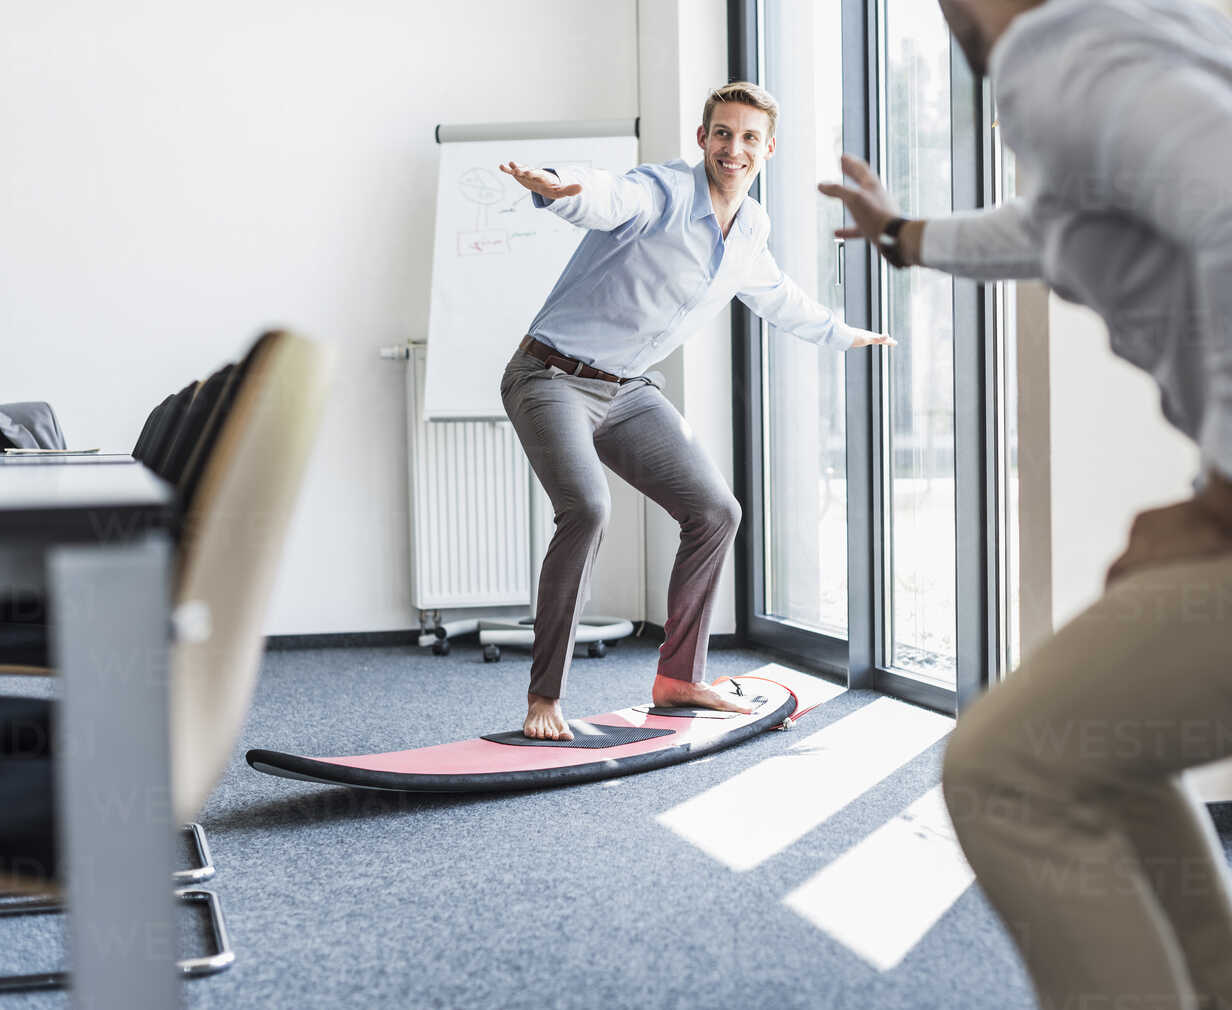 Two playful colleagues with surfboard in office - UUF11876 - Uwe Umstätter/Westend61